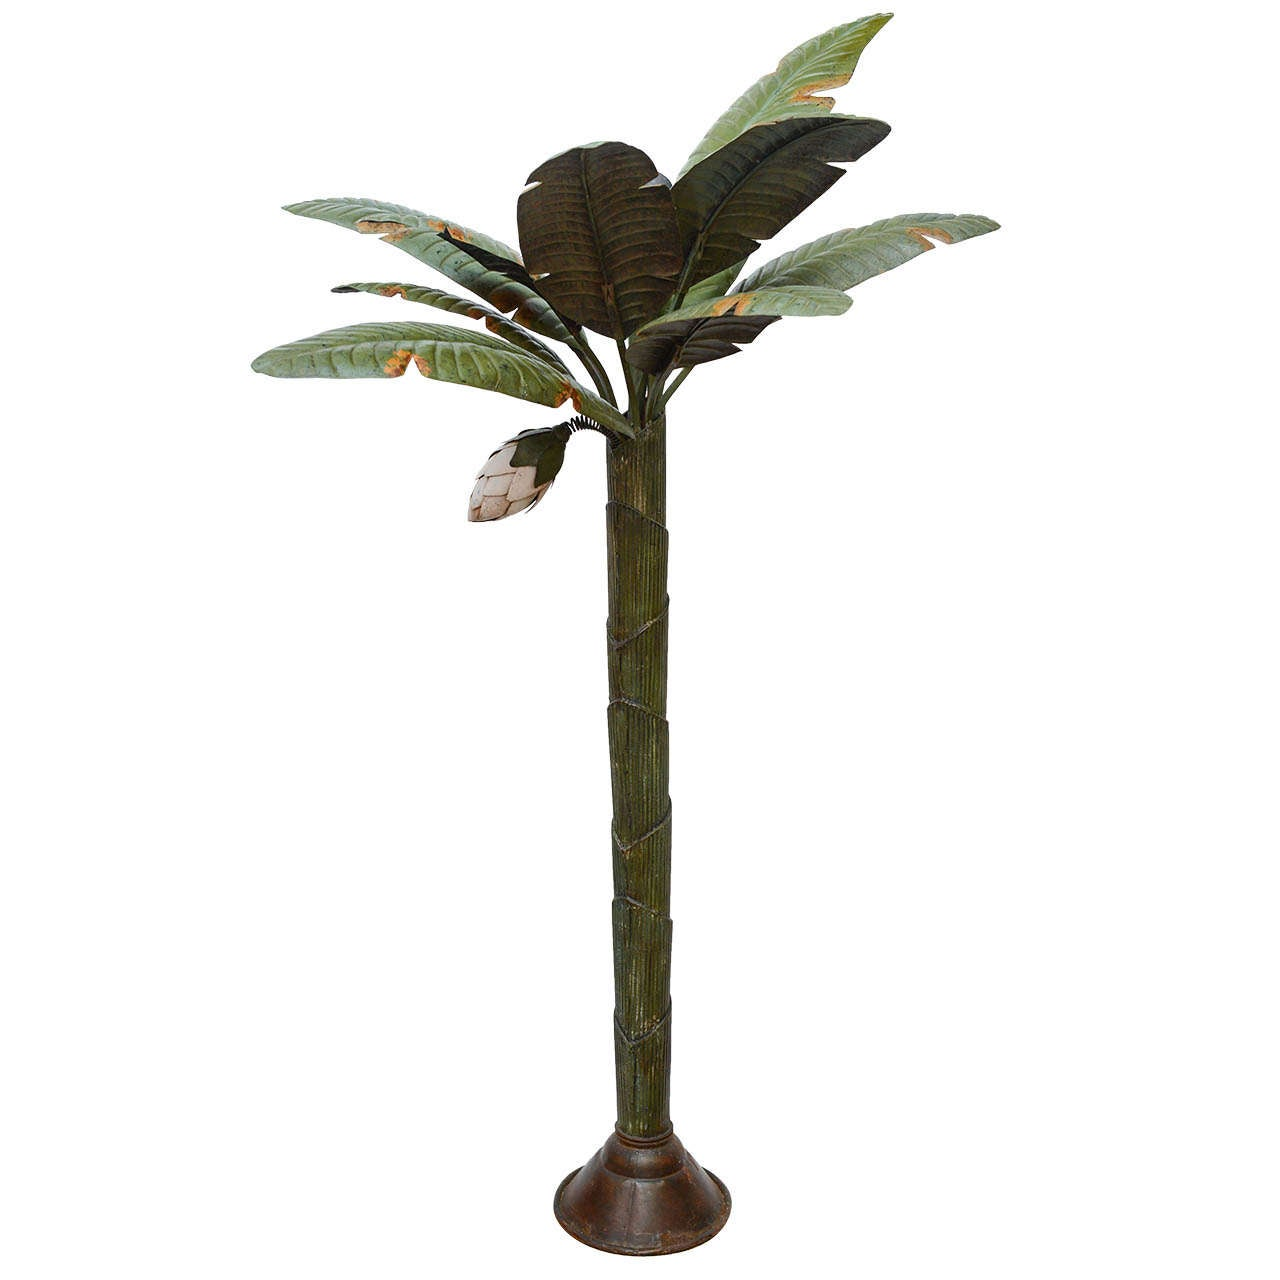 Painted Tole Freestanding Palm Tree Sculpture